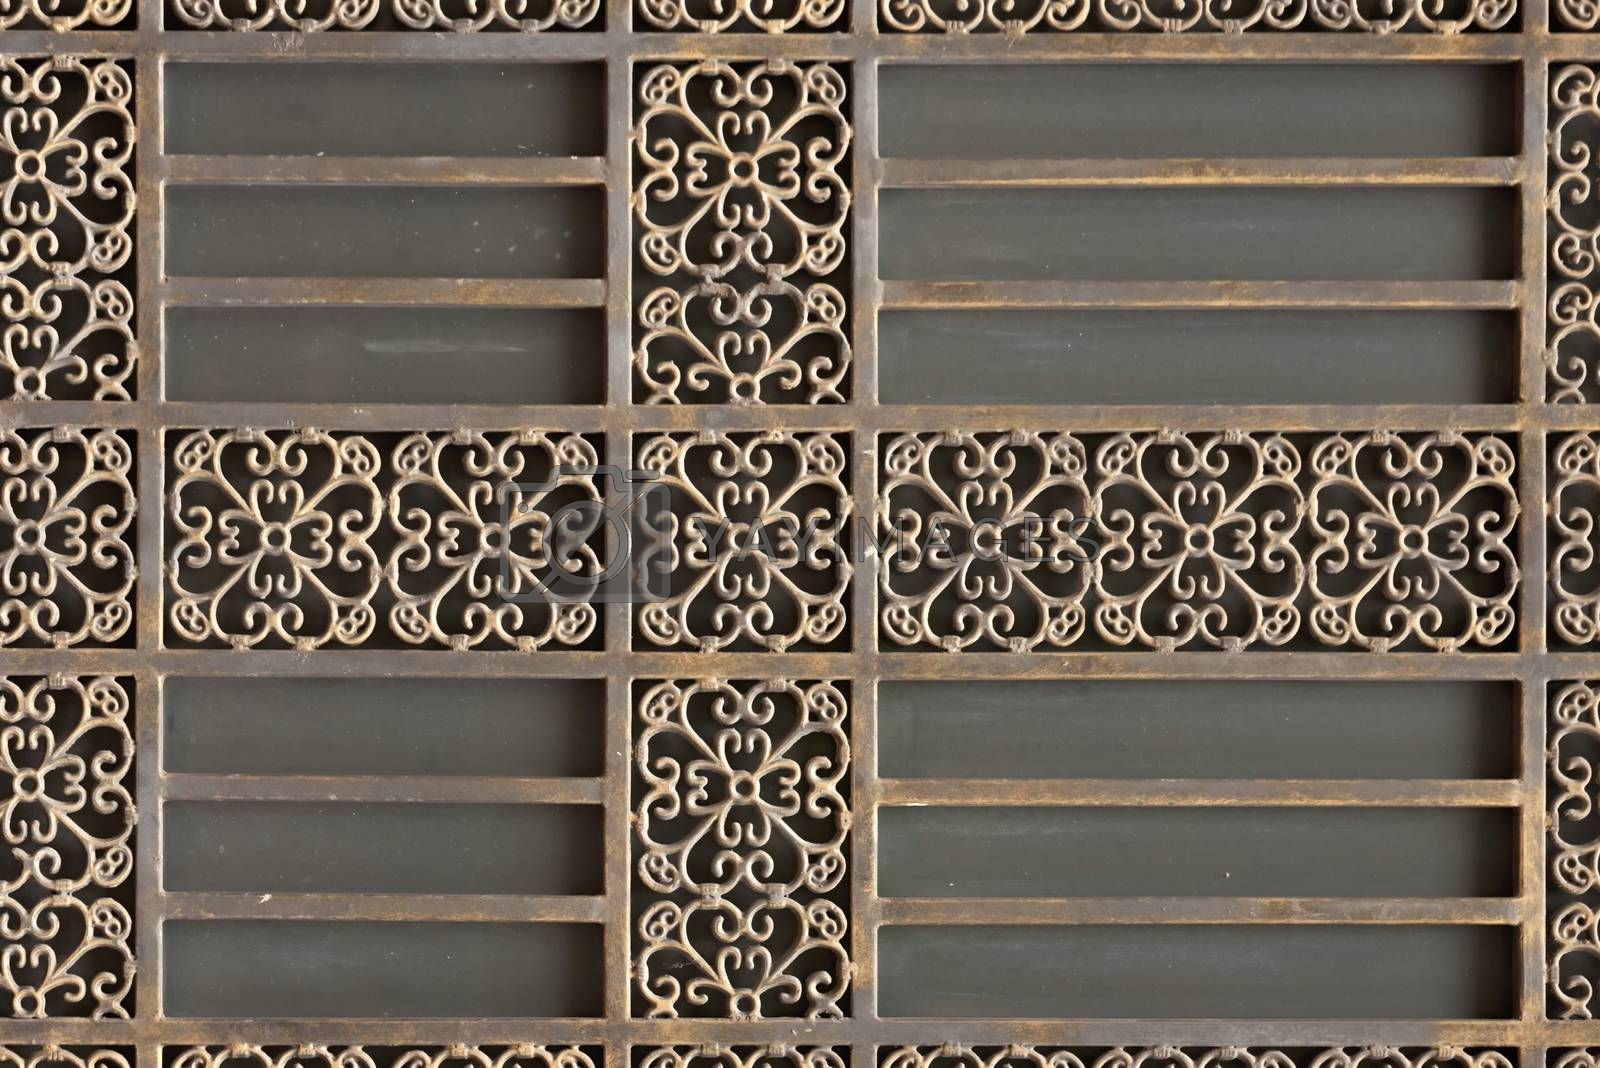 Decorative metal grille. Structure and ornaments of wrought iron